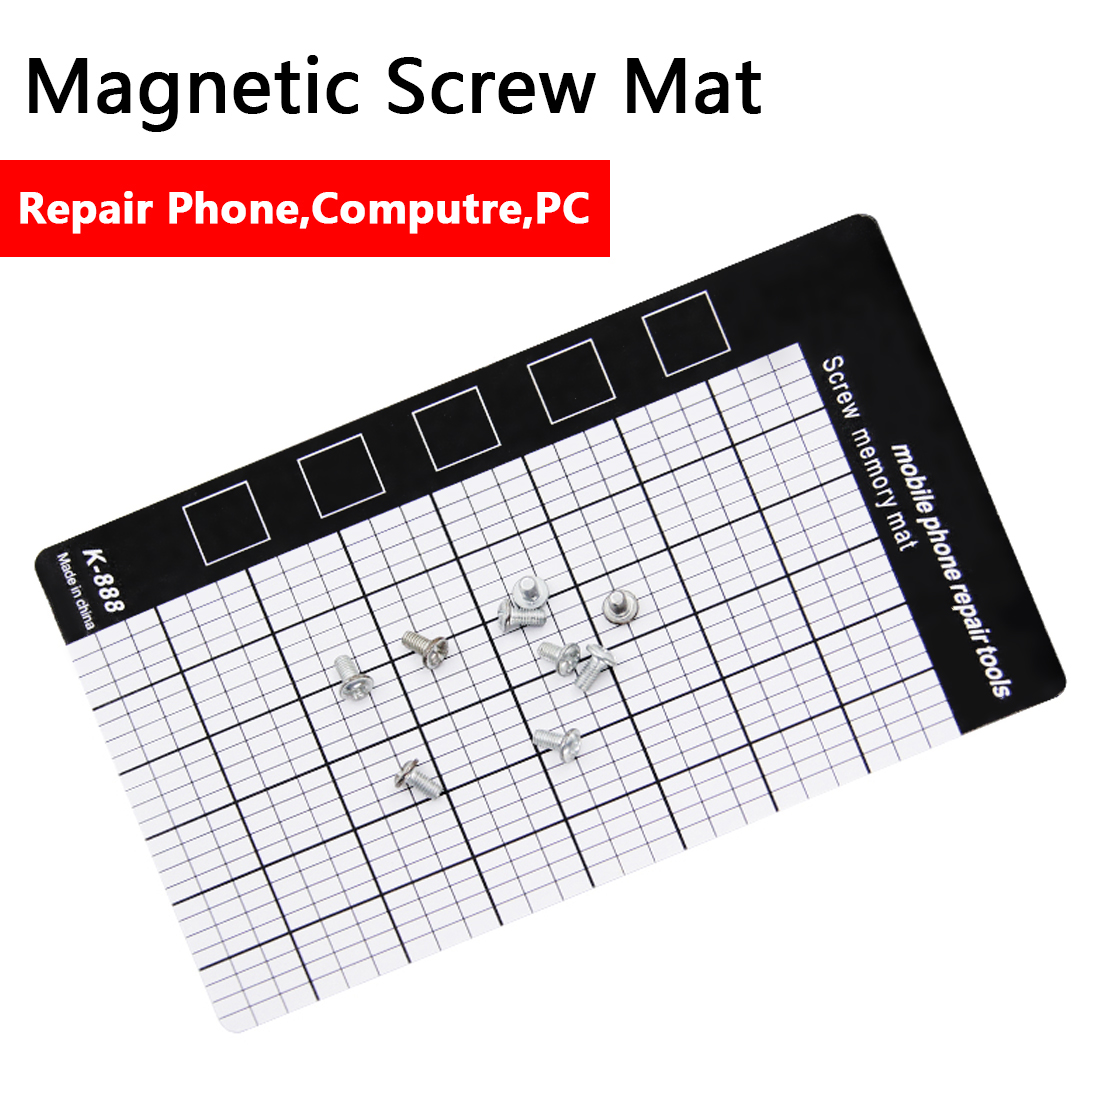 Magnetic Working Pad Magnetic Screw Mat Memory Chart Work Pad Mobile Phone Repair Tools 145 X 90mm Hand Tool Set